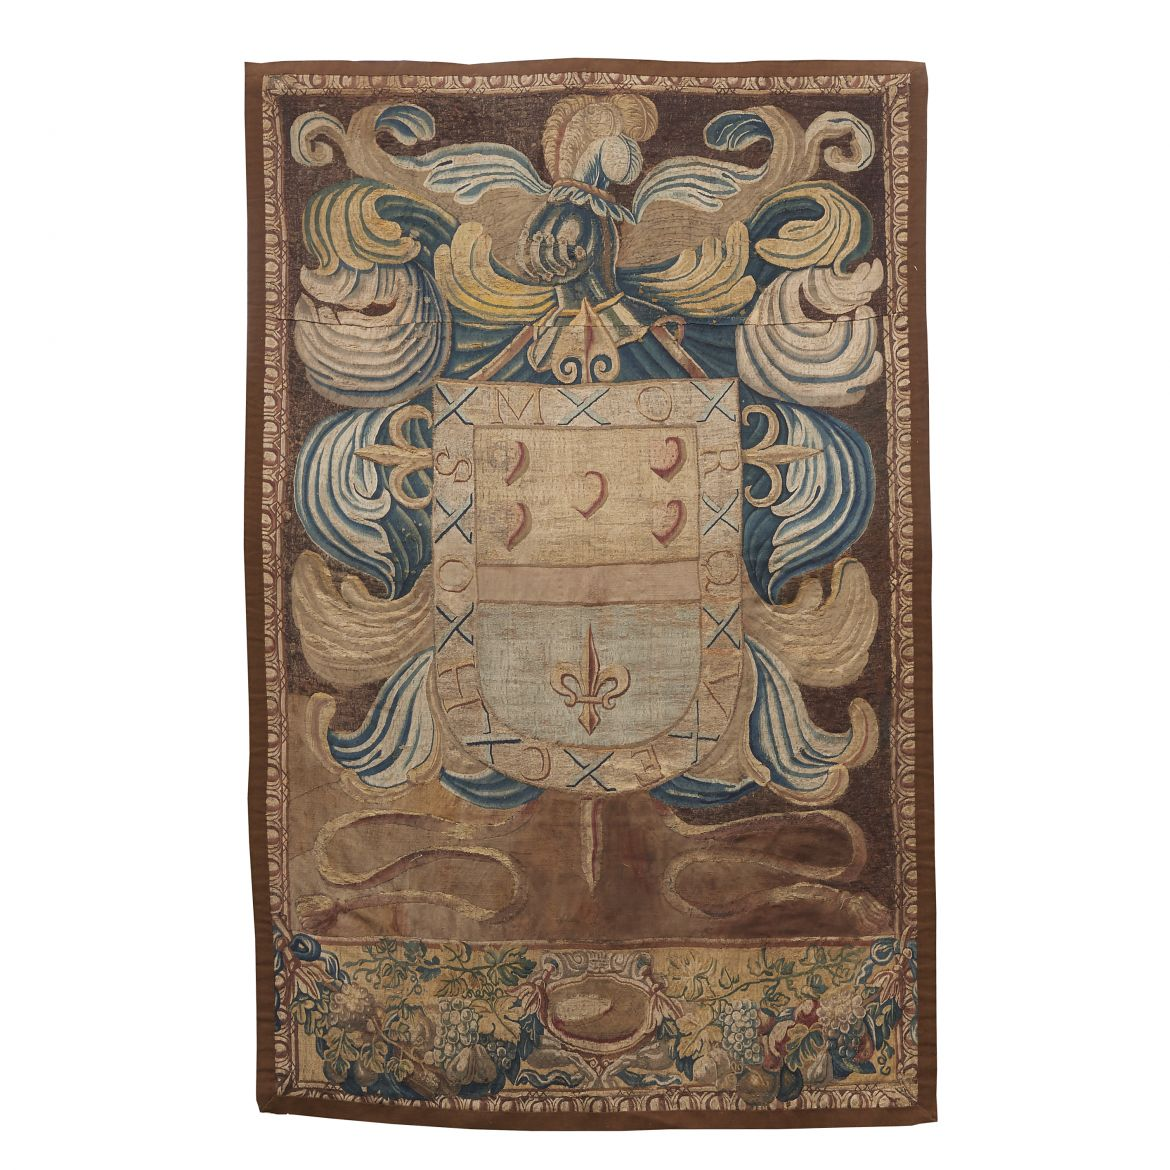 Portrait Tapestry of a Coat of Arms